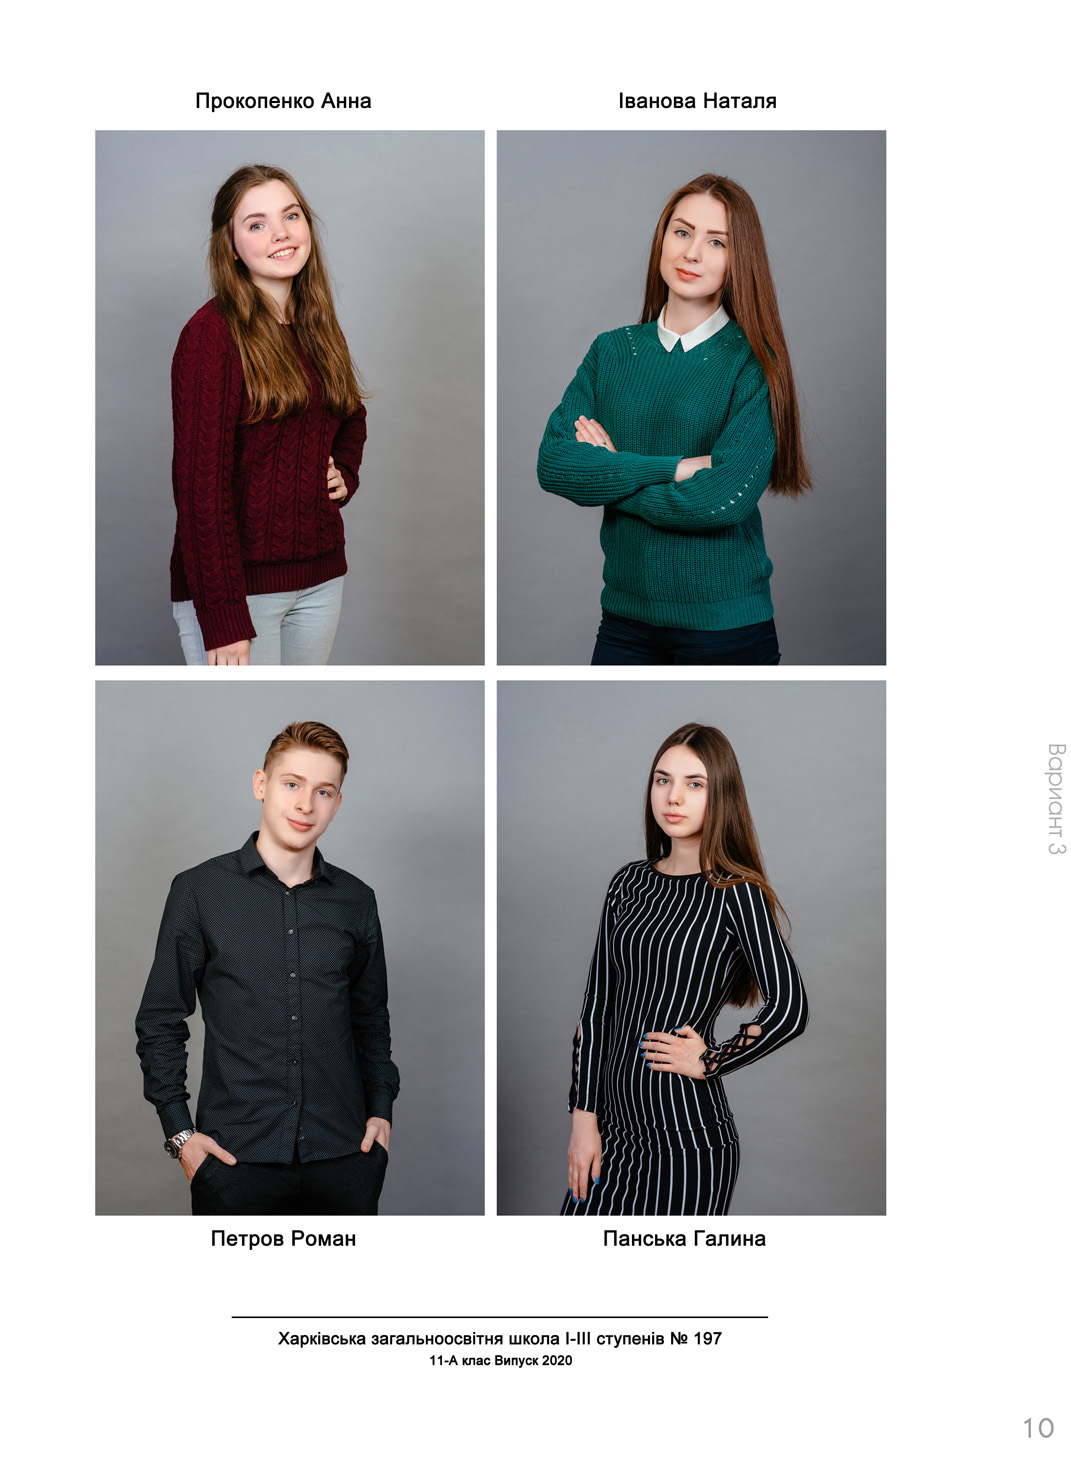 https://school-photo.com.ua/wp-content/uploads/2019/09/10-copy.jpg